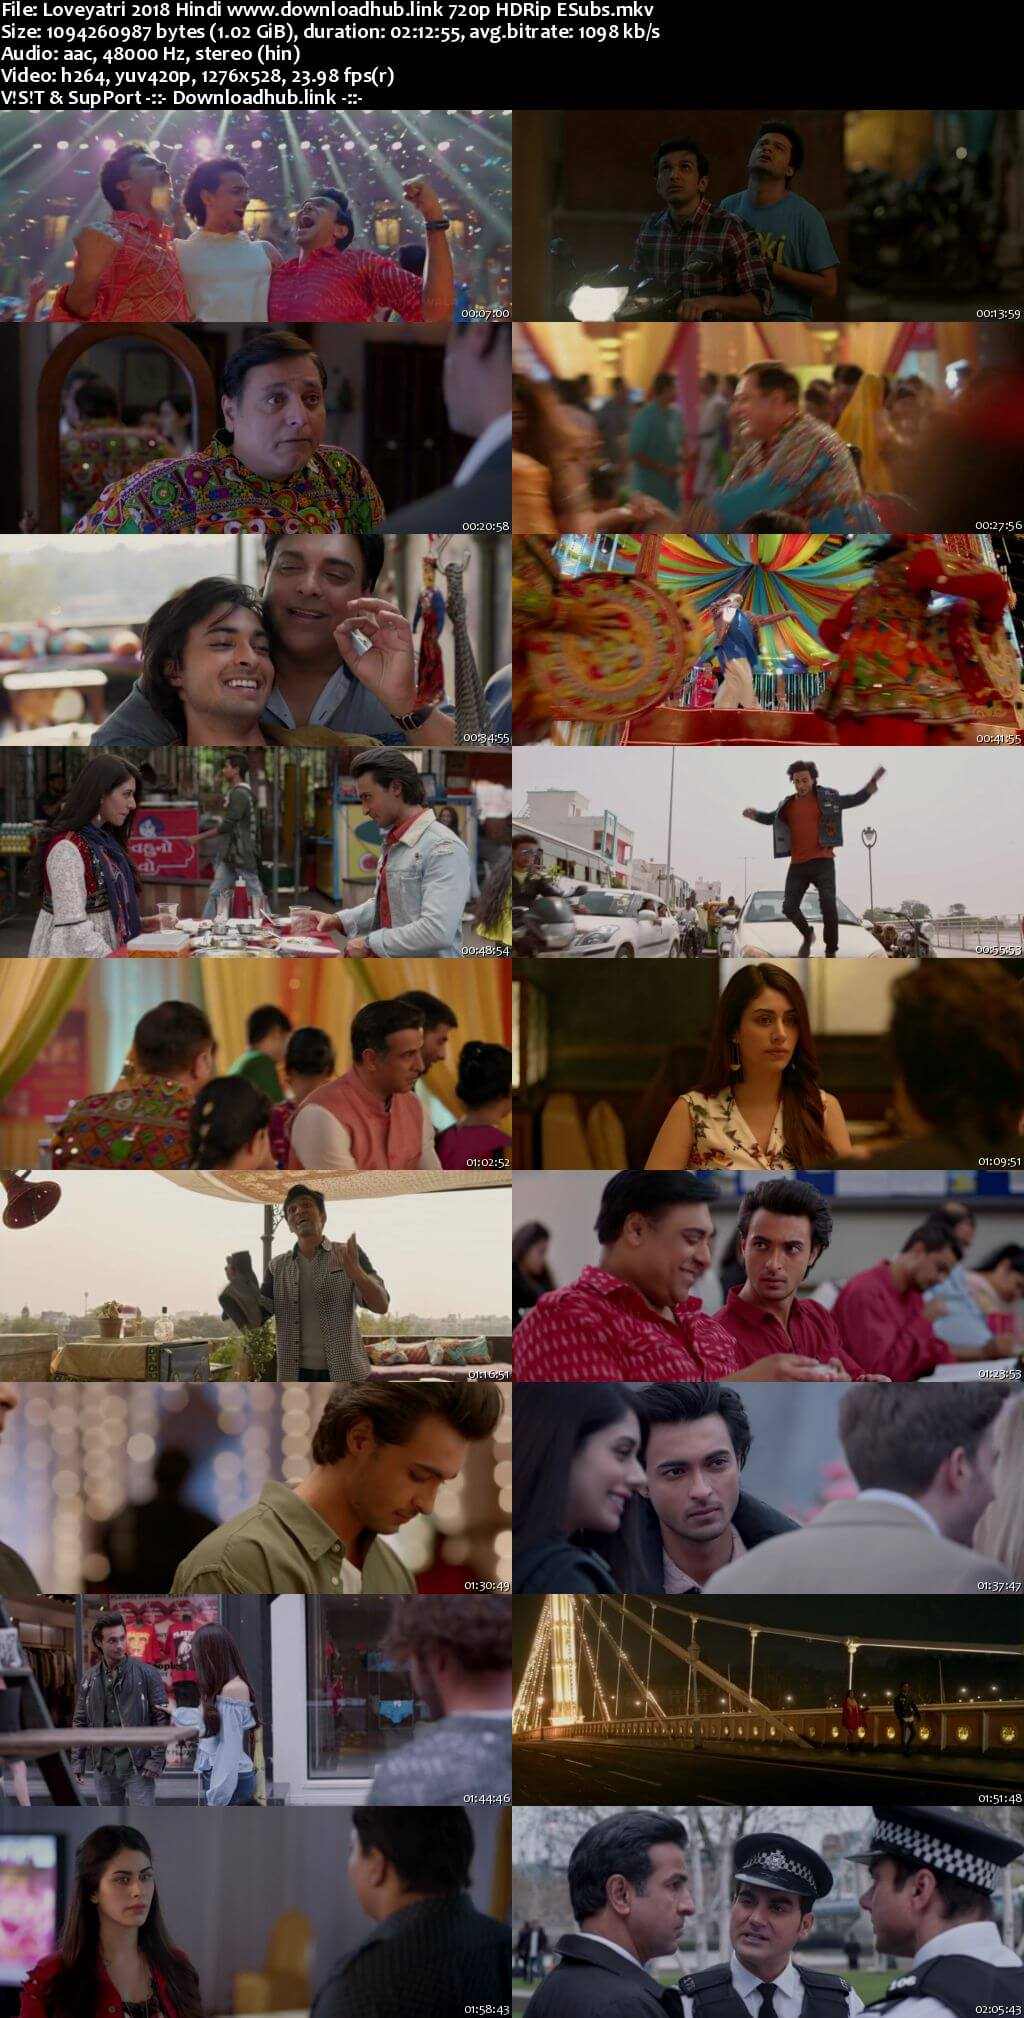 Loveyatri 2018 Hindi 720p HDRip ESubs